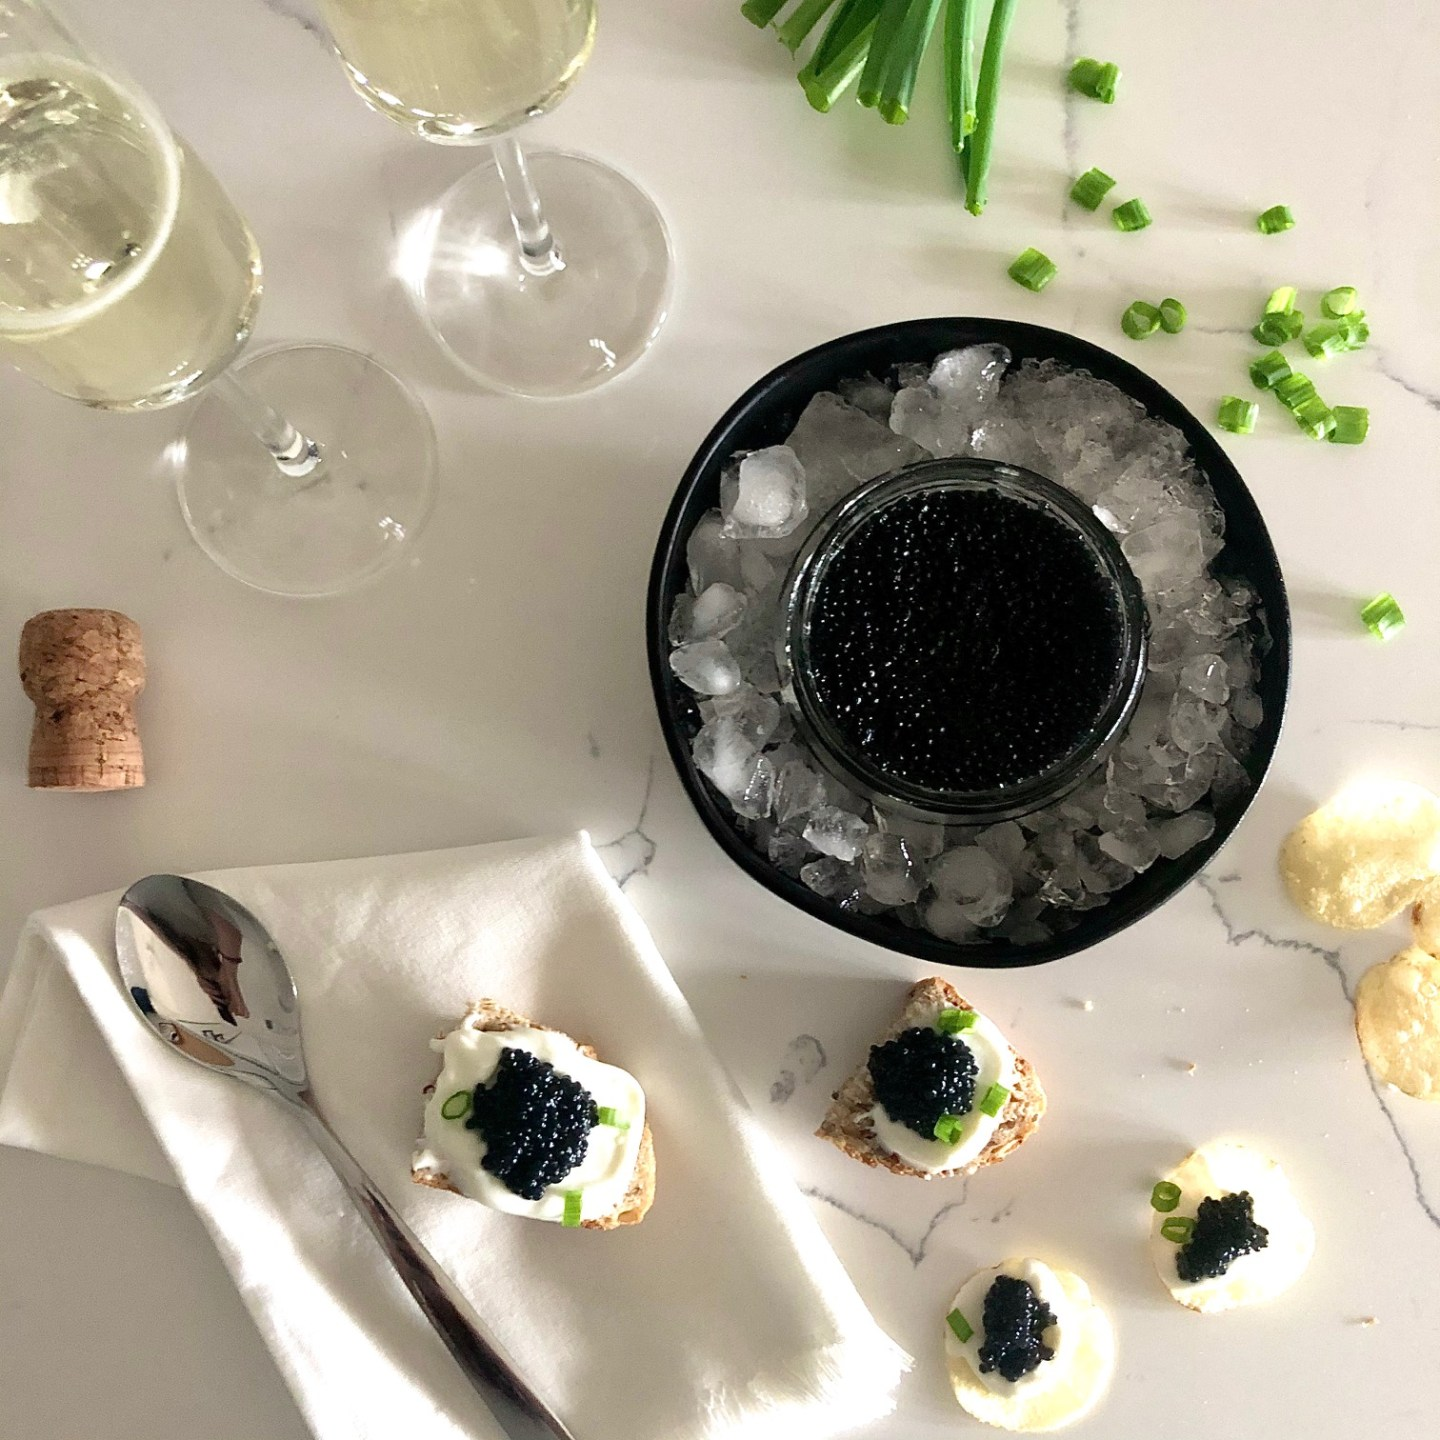 Champagne and vegan caviar on toast points and potato chips with creme fraiche and chives